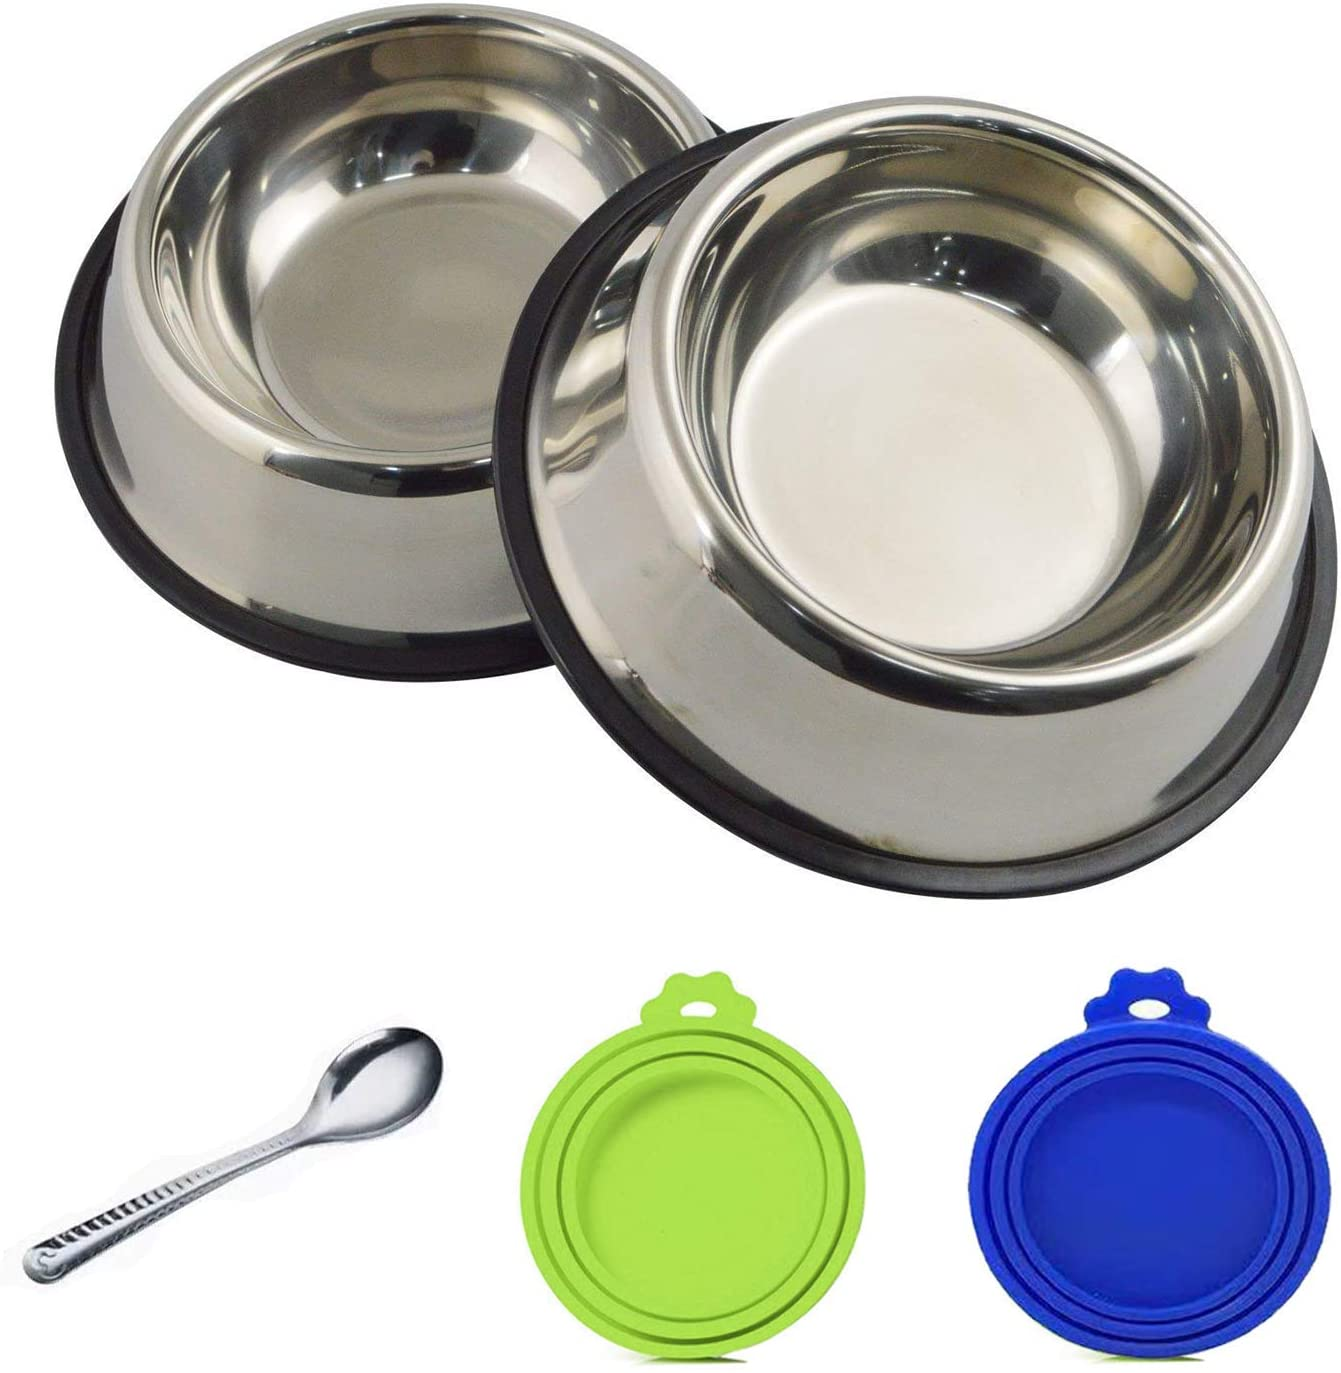 Gz party Stainless Steel Dog Bowl with Rubber Base、Pet Food Can Covers and Pet Food Can Spoon,Pet Supplies Kit